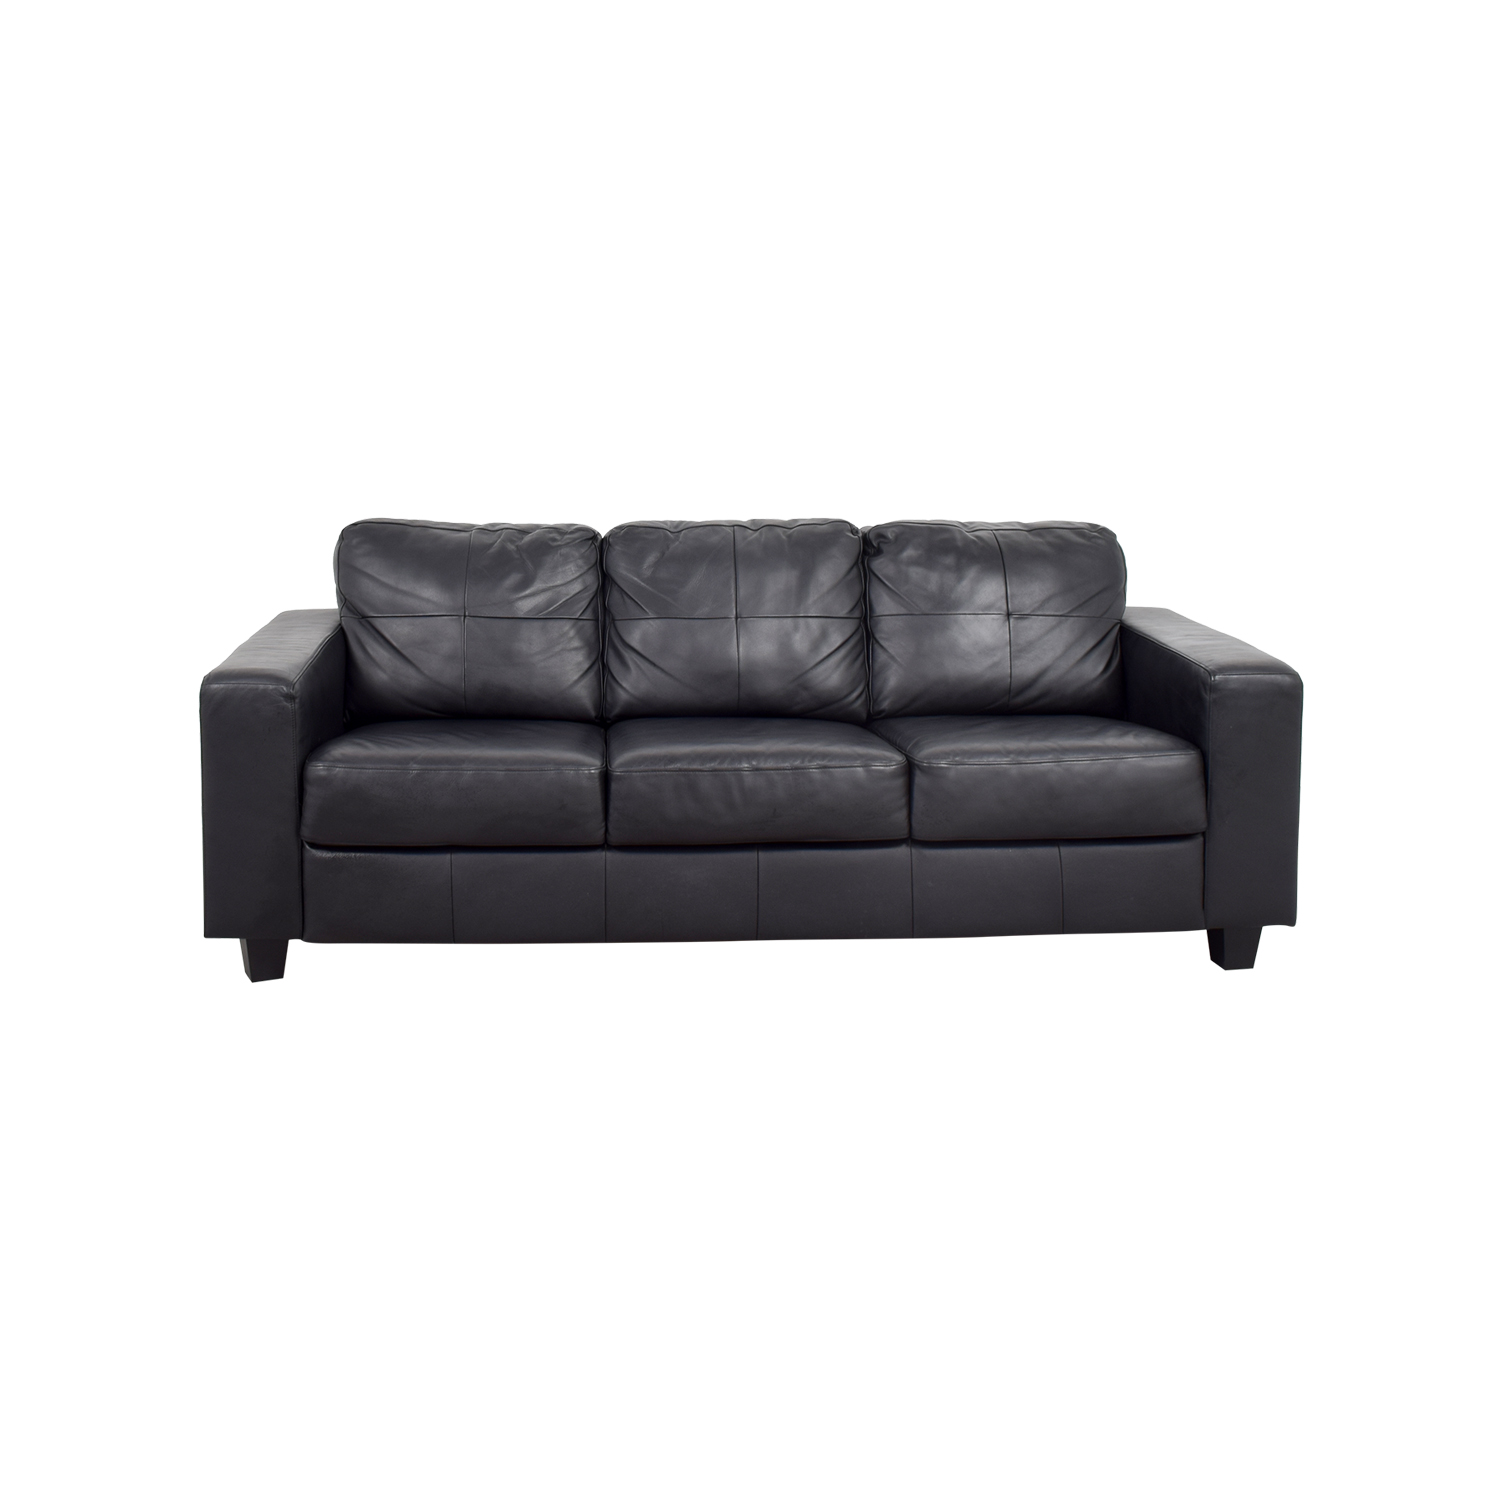 44% OFF - IKEA IKEA Skogaby Black Leather Sofa / Sofas